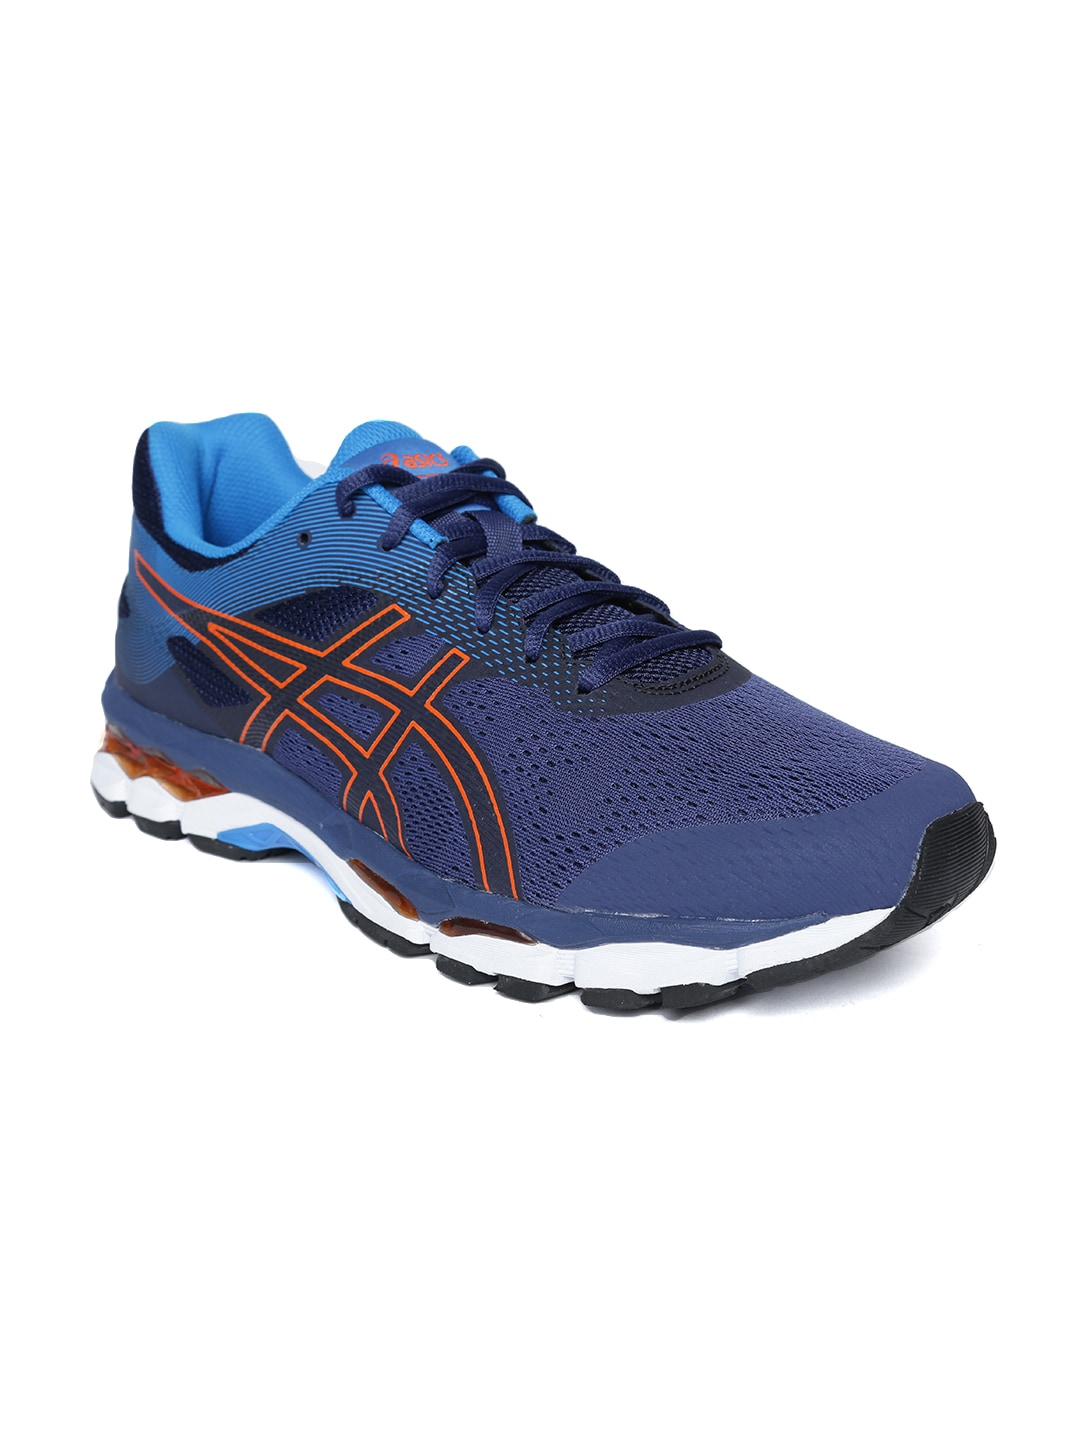 official photos 8711b ccb1a Asics Shoes - Buy Asics Shoes for Men and Women Online - Myntra